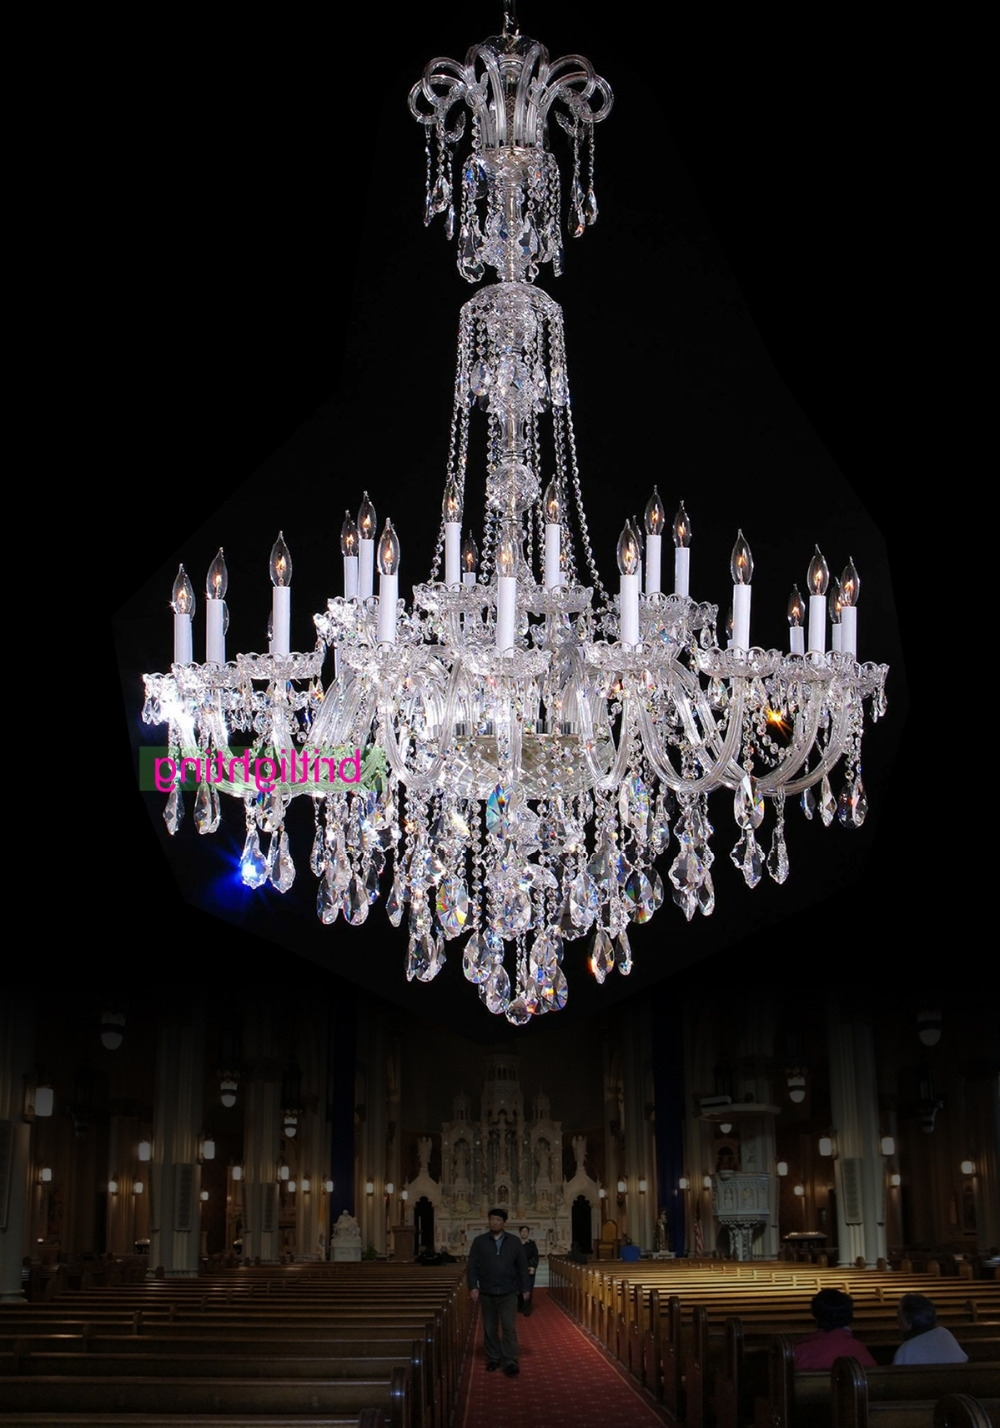 Large Chandelier With Crystal Pendants Big Lamp For Hotel Extra Throughout Popular Large Chandeliers (View 11 of 20)